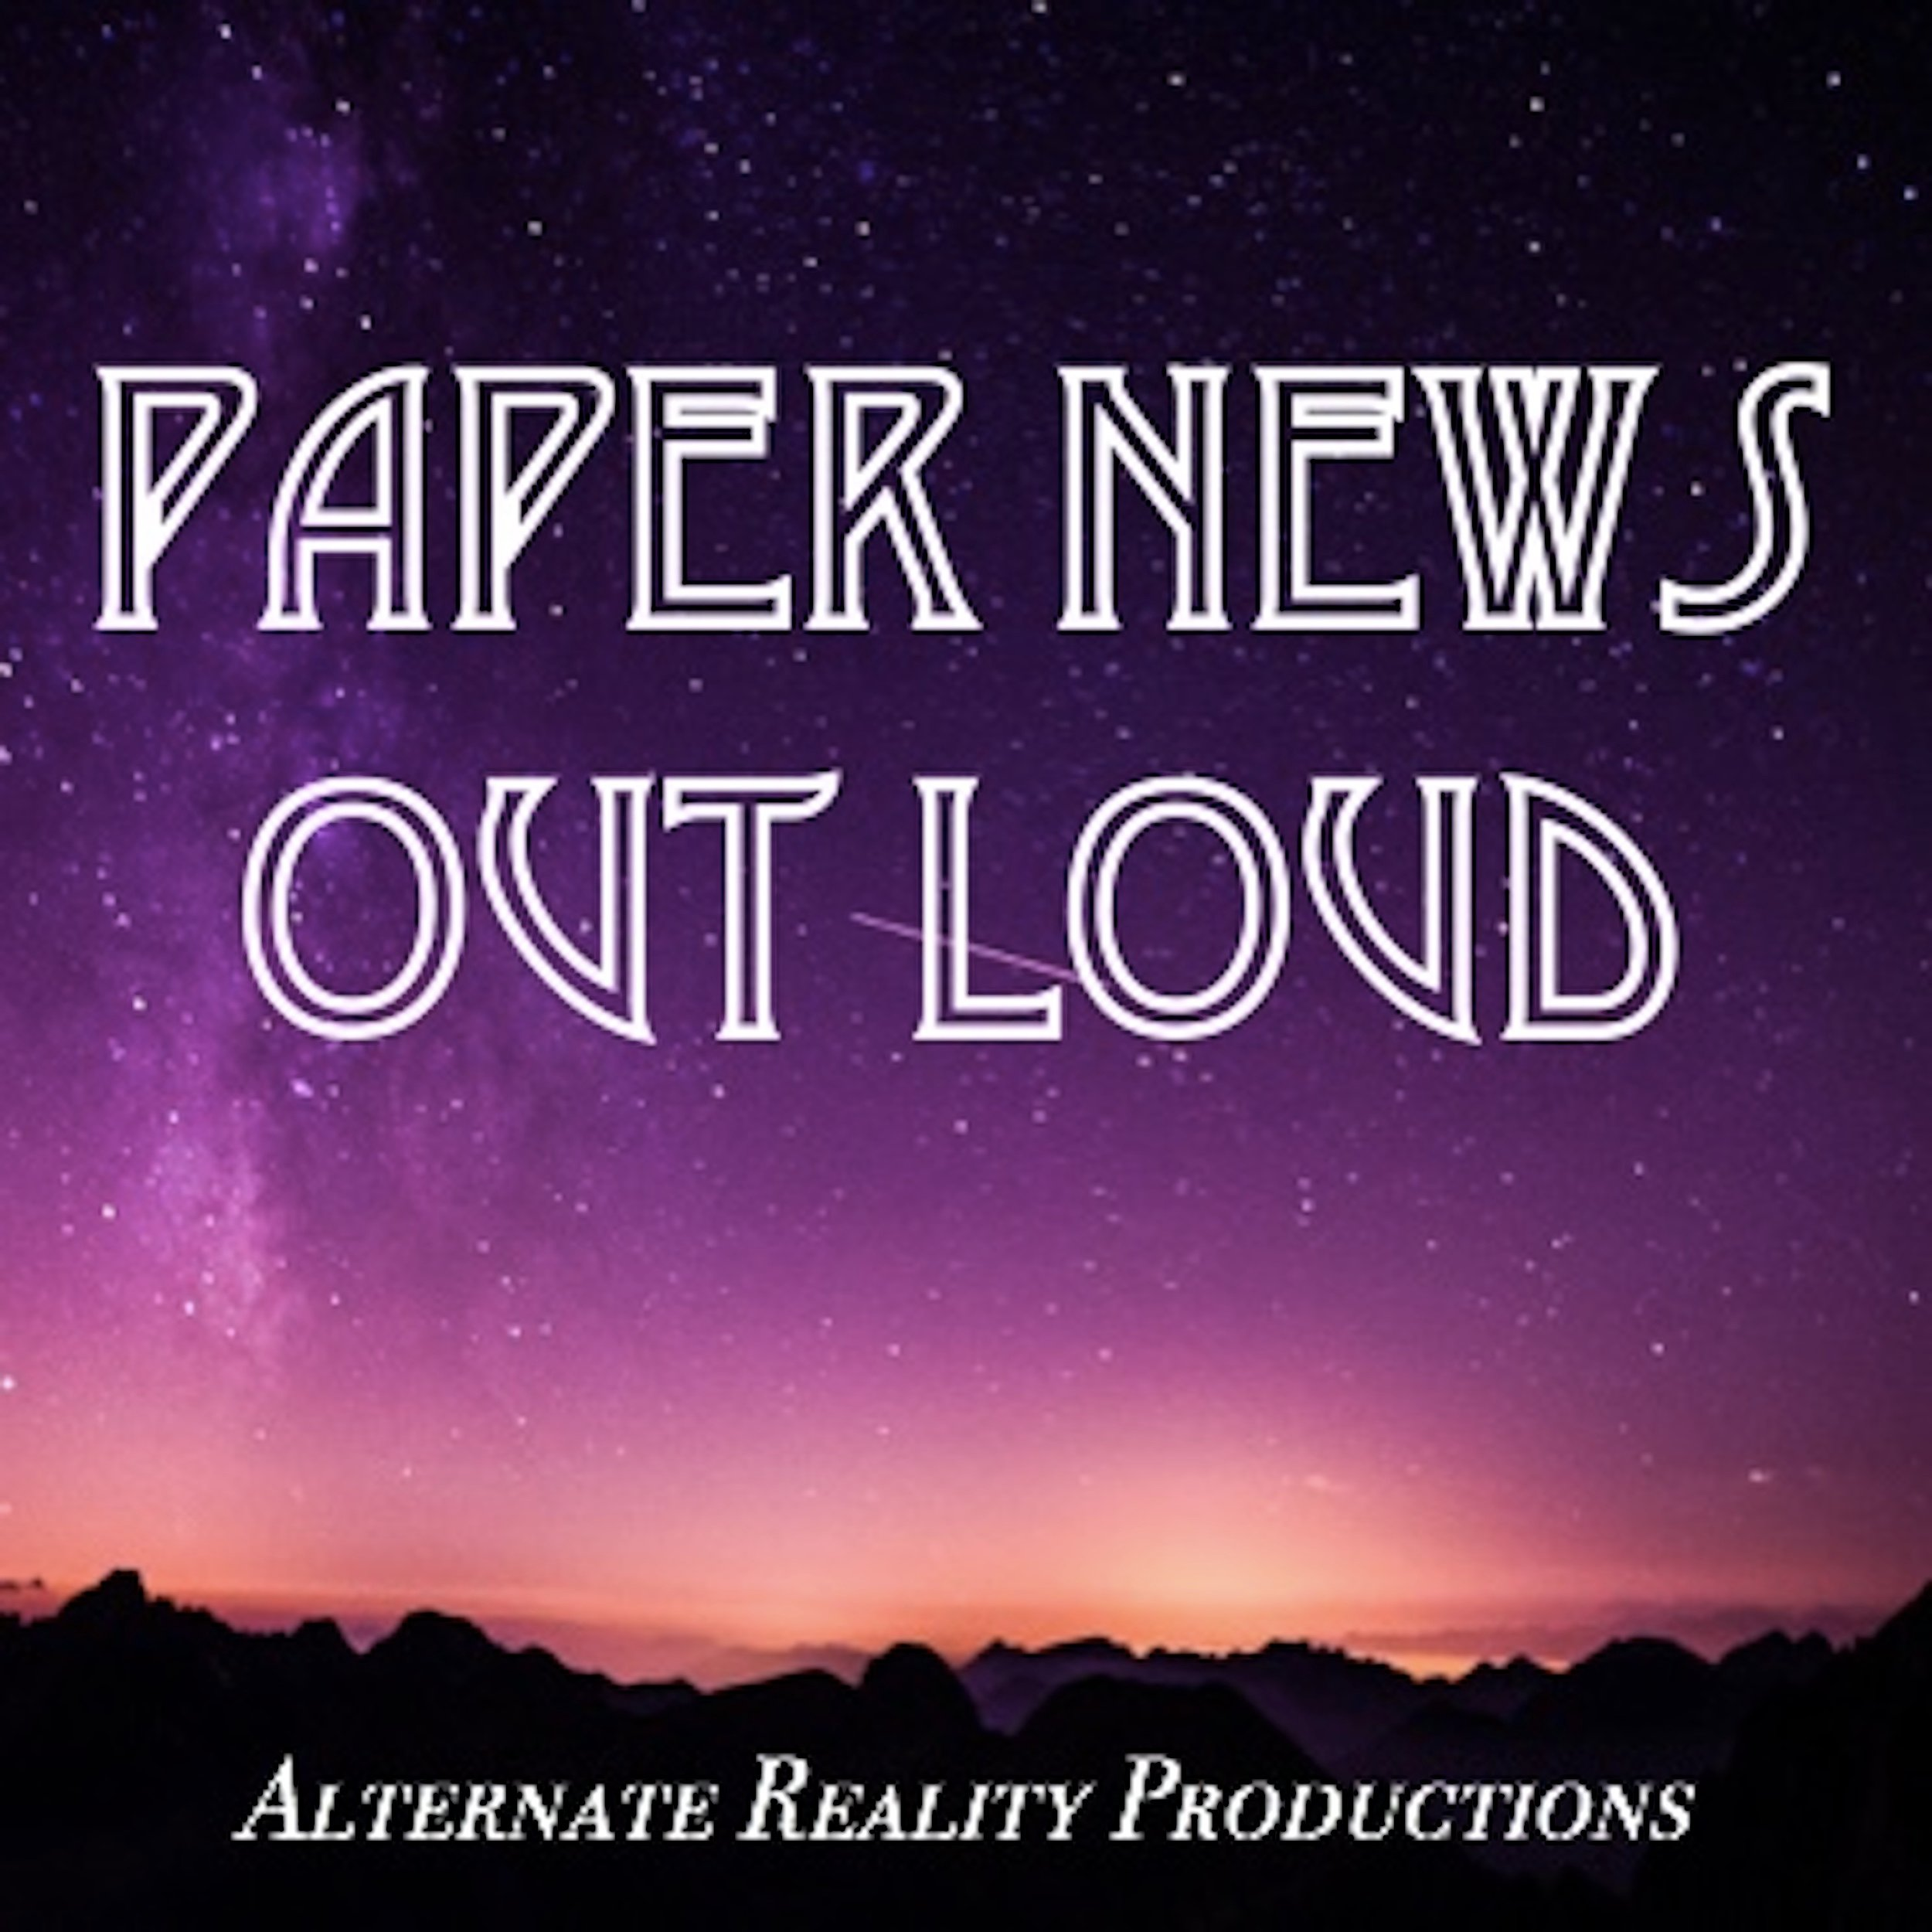 Paper News Out Loud podcast show image